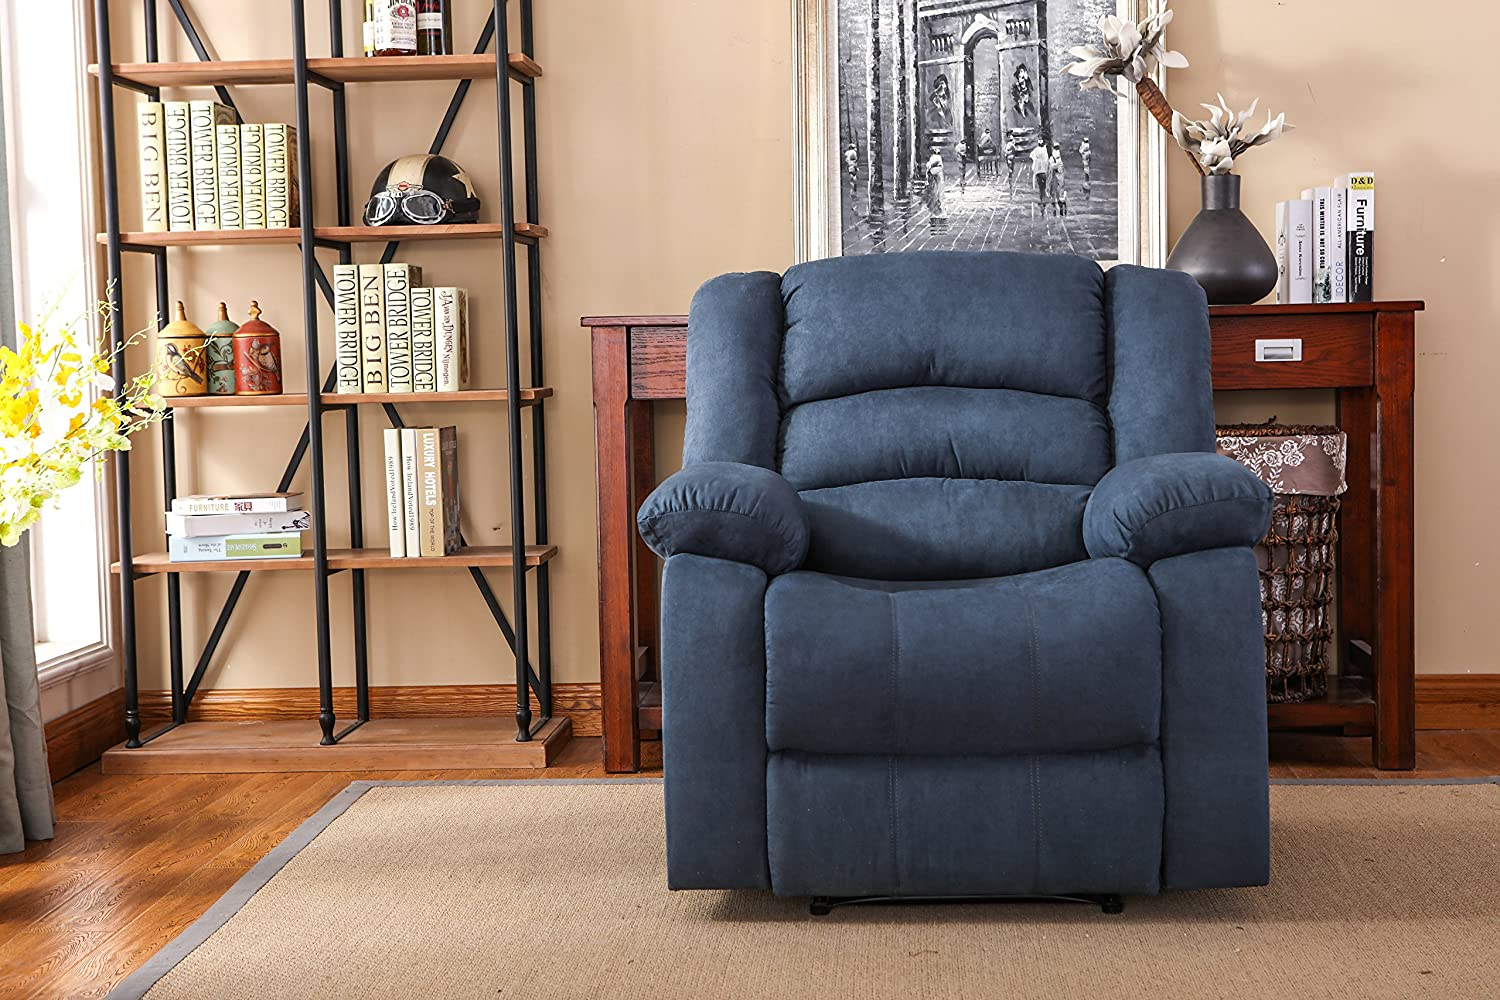 NHI Express Fully - Recliners to Sleep